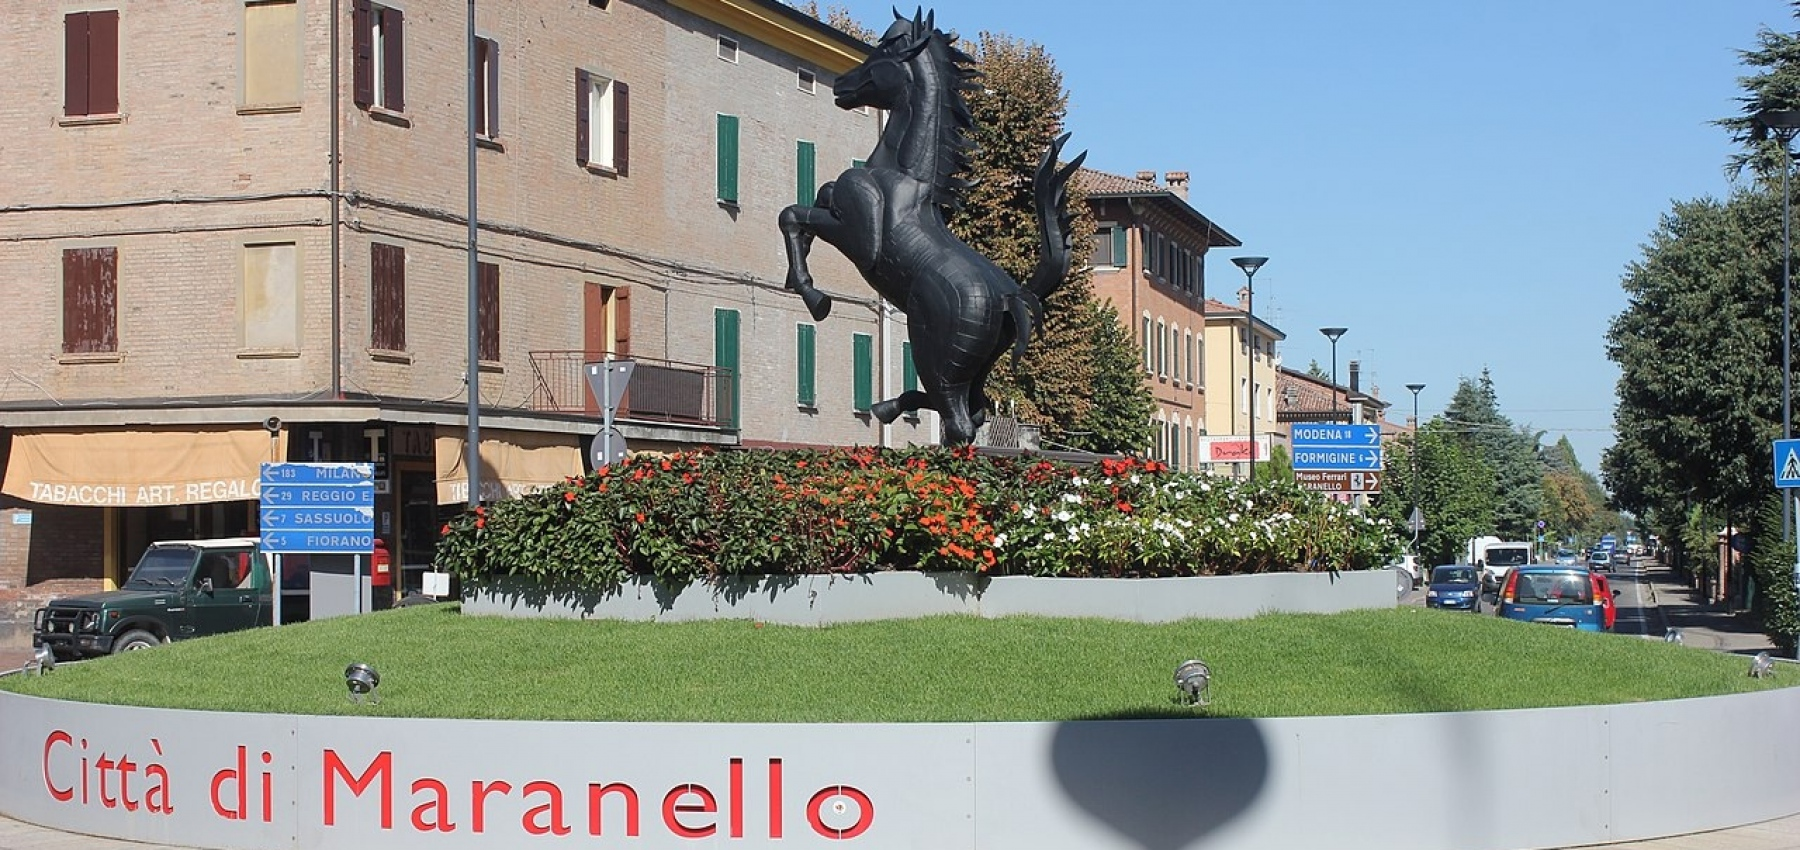 Maranello: city of Ferrari